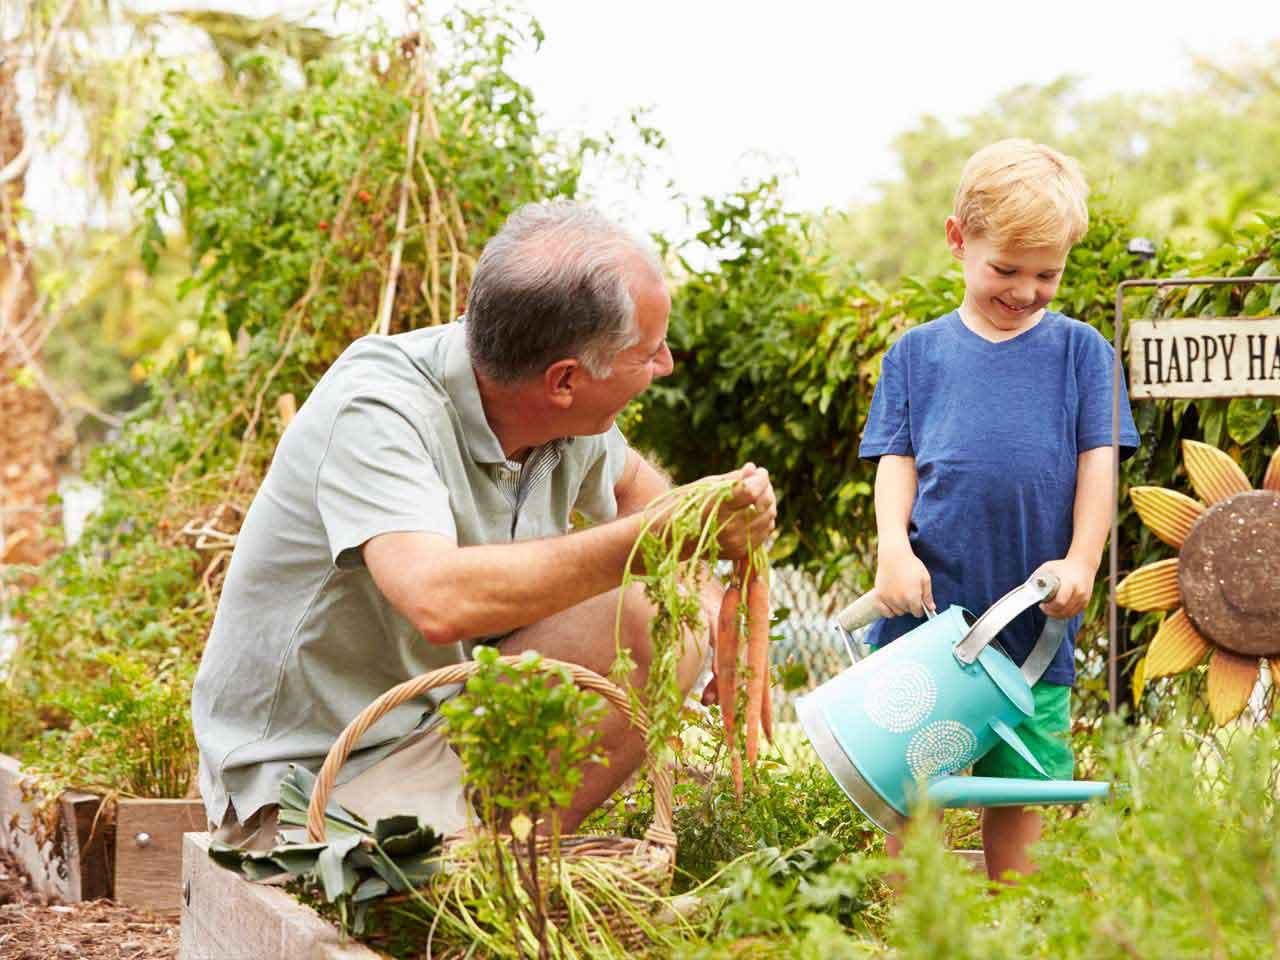 Create a vegetable patch for children